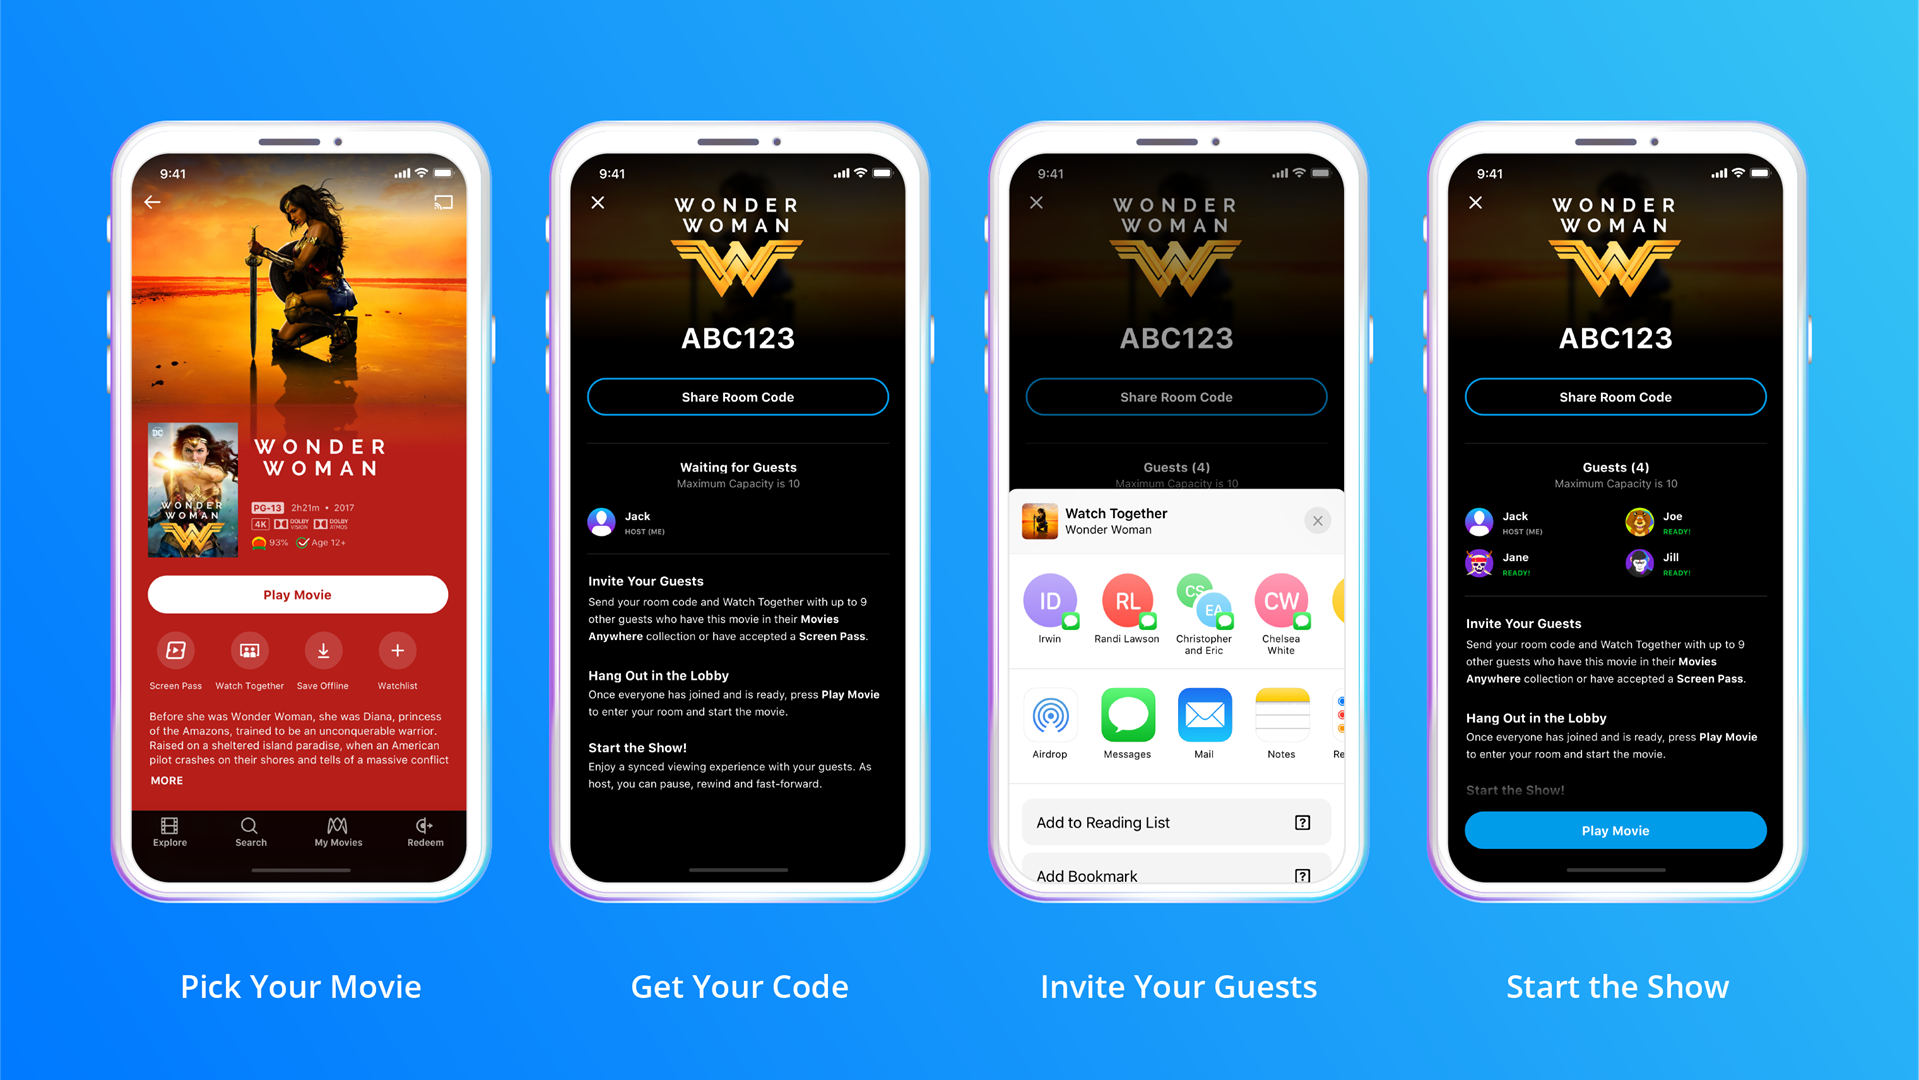 Four phones showing the process to share a movie, includign sharing a code over email.